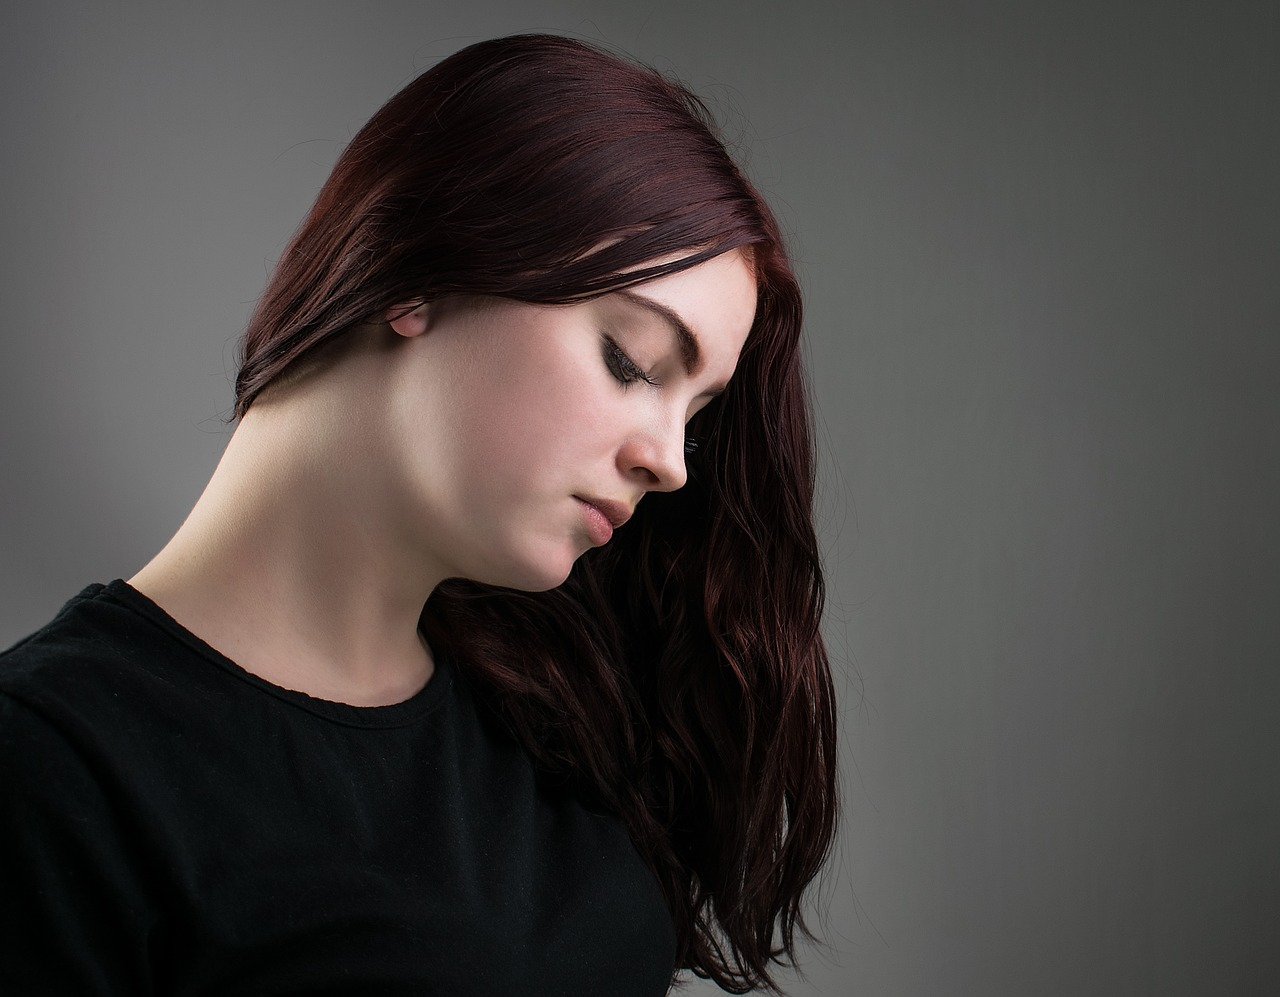 woman with dark hair thinking